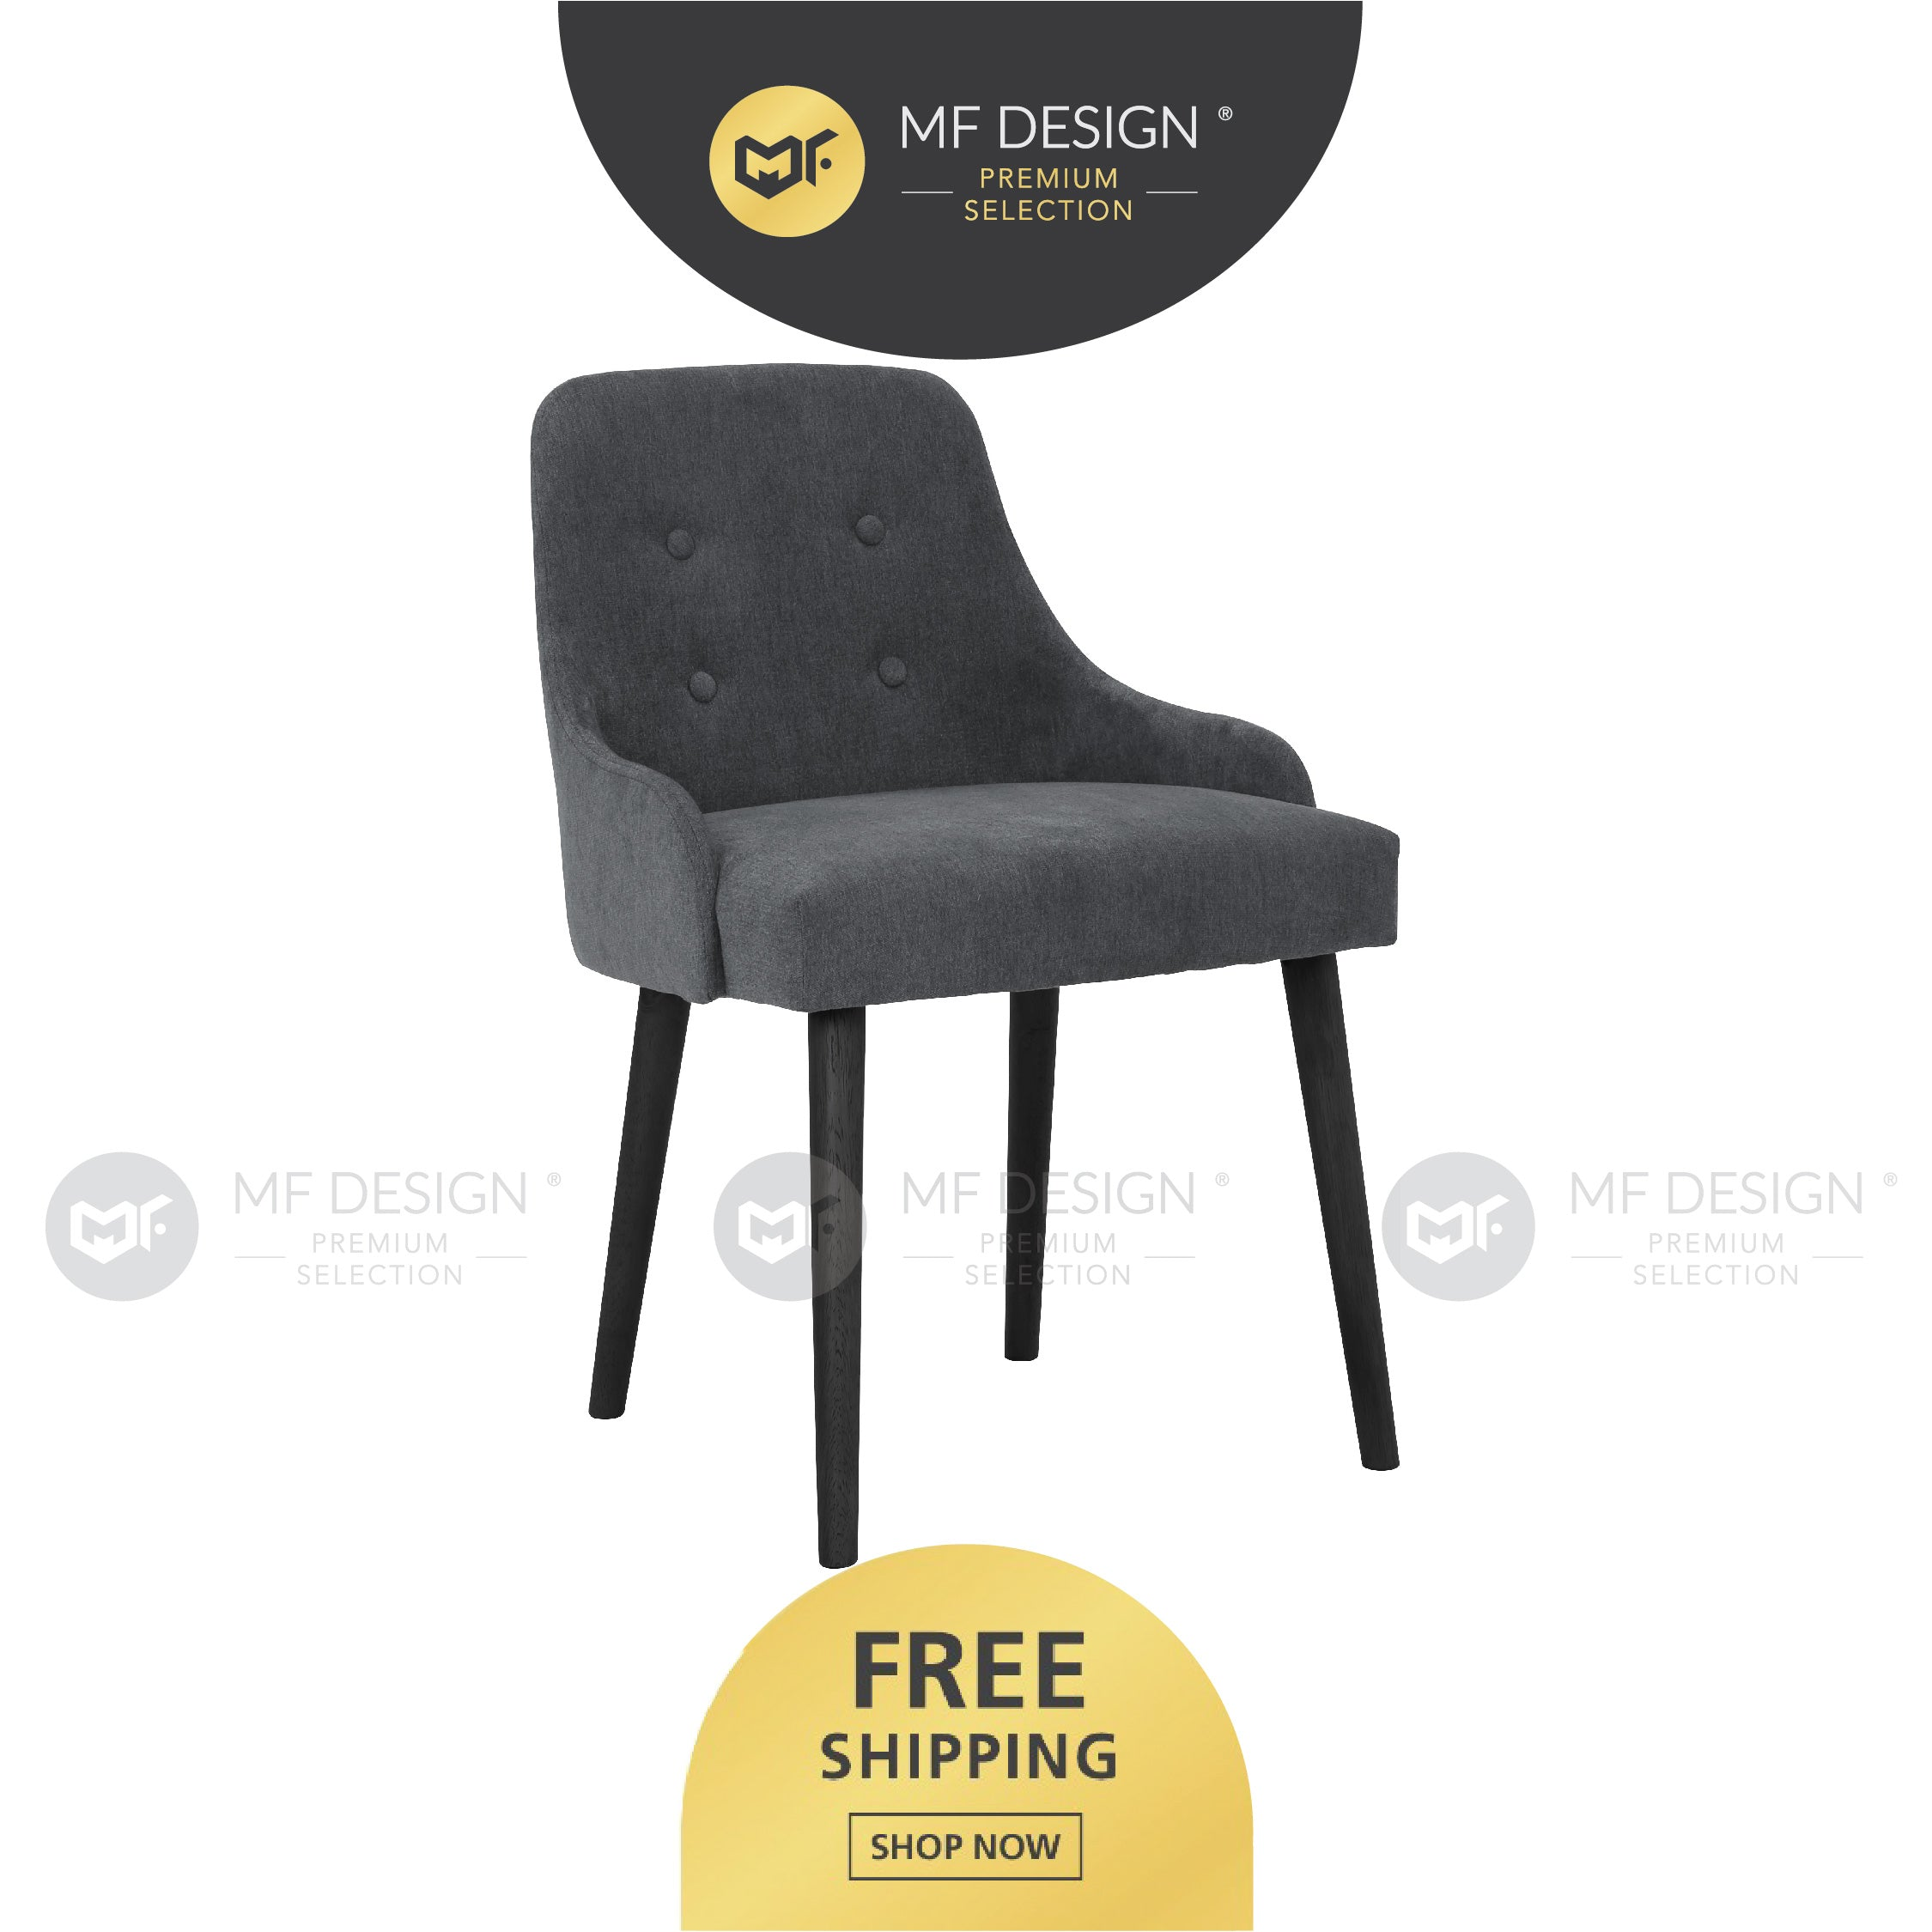 MFD Premium Charlotte Dining Chair / Wooden Chair / Solid Rubber Wood / Kerusi Makan Kayu Getah / Living Room